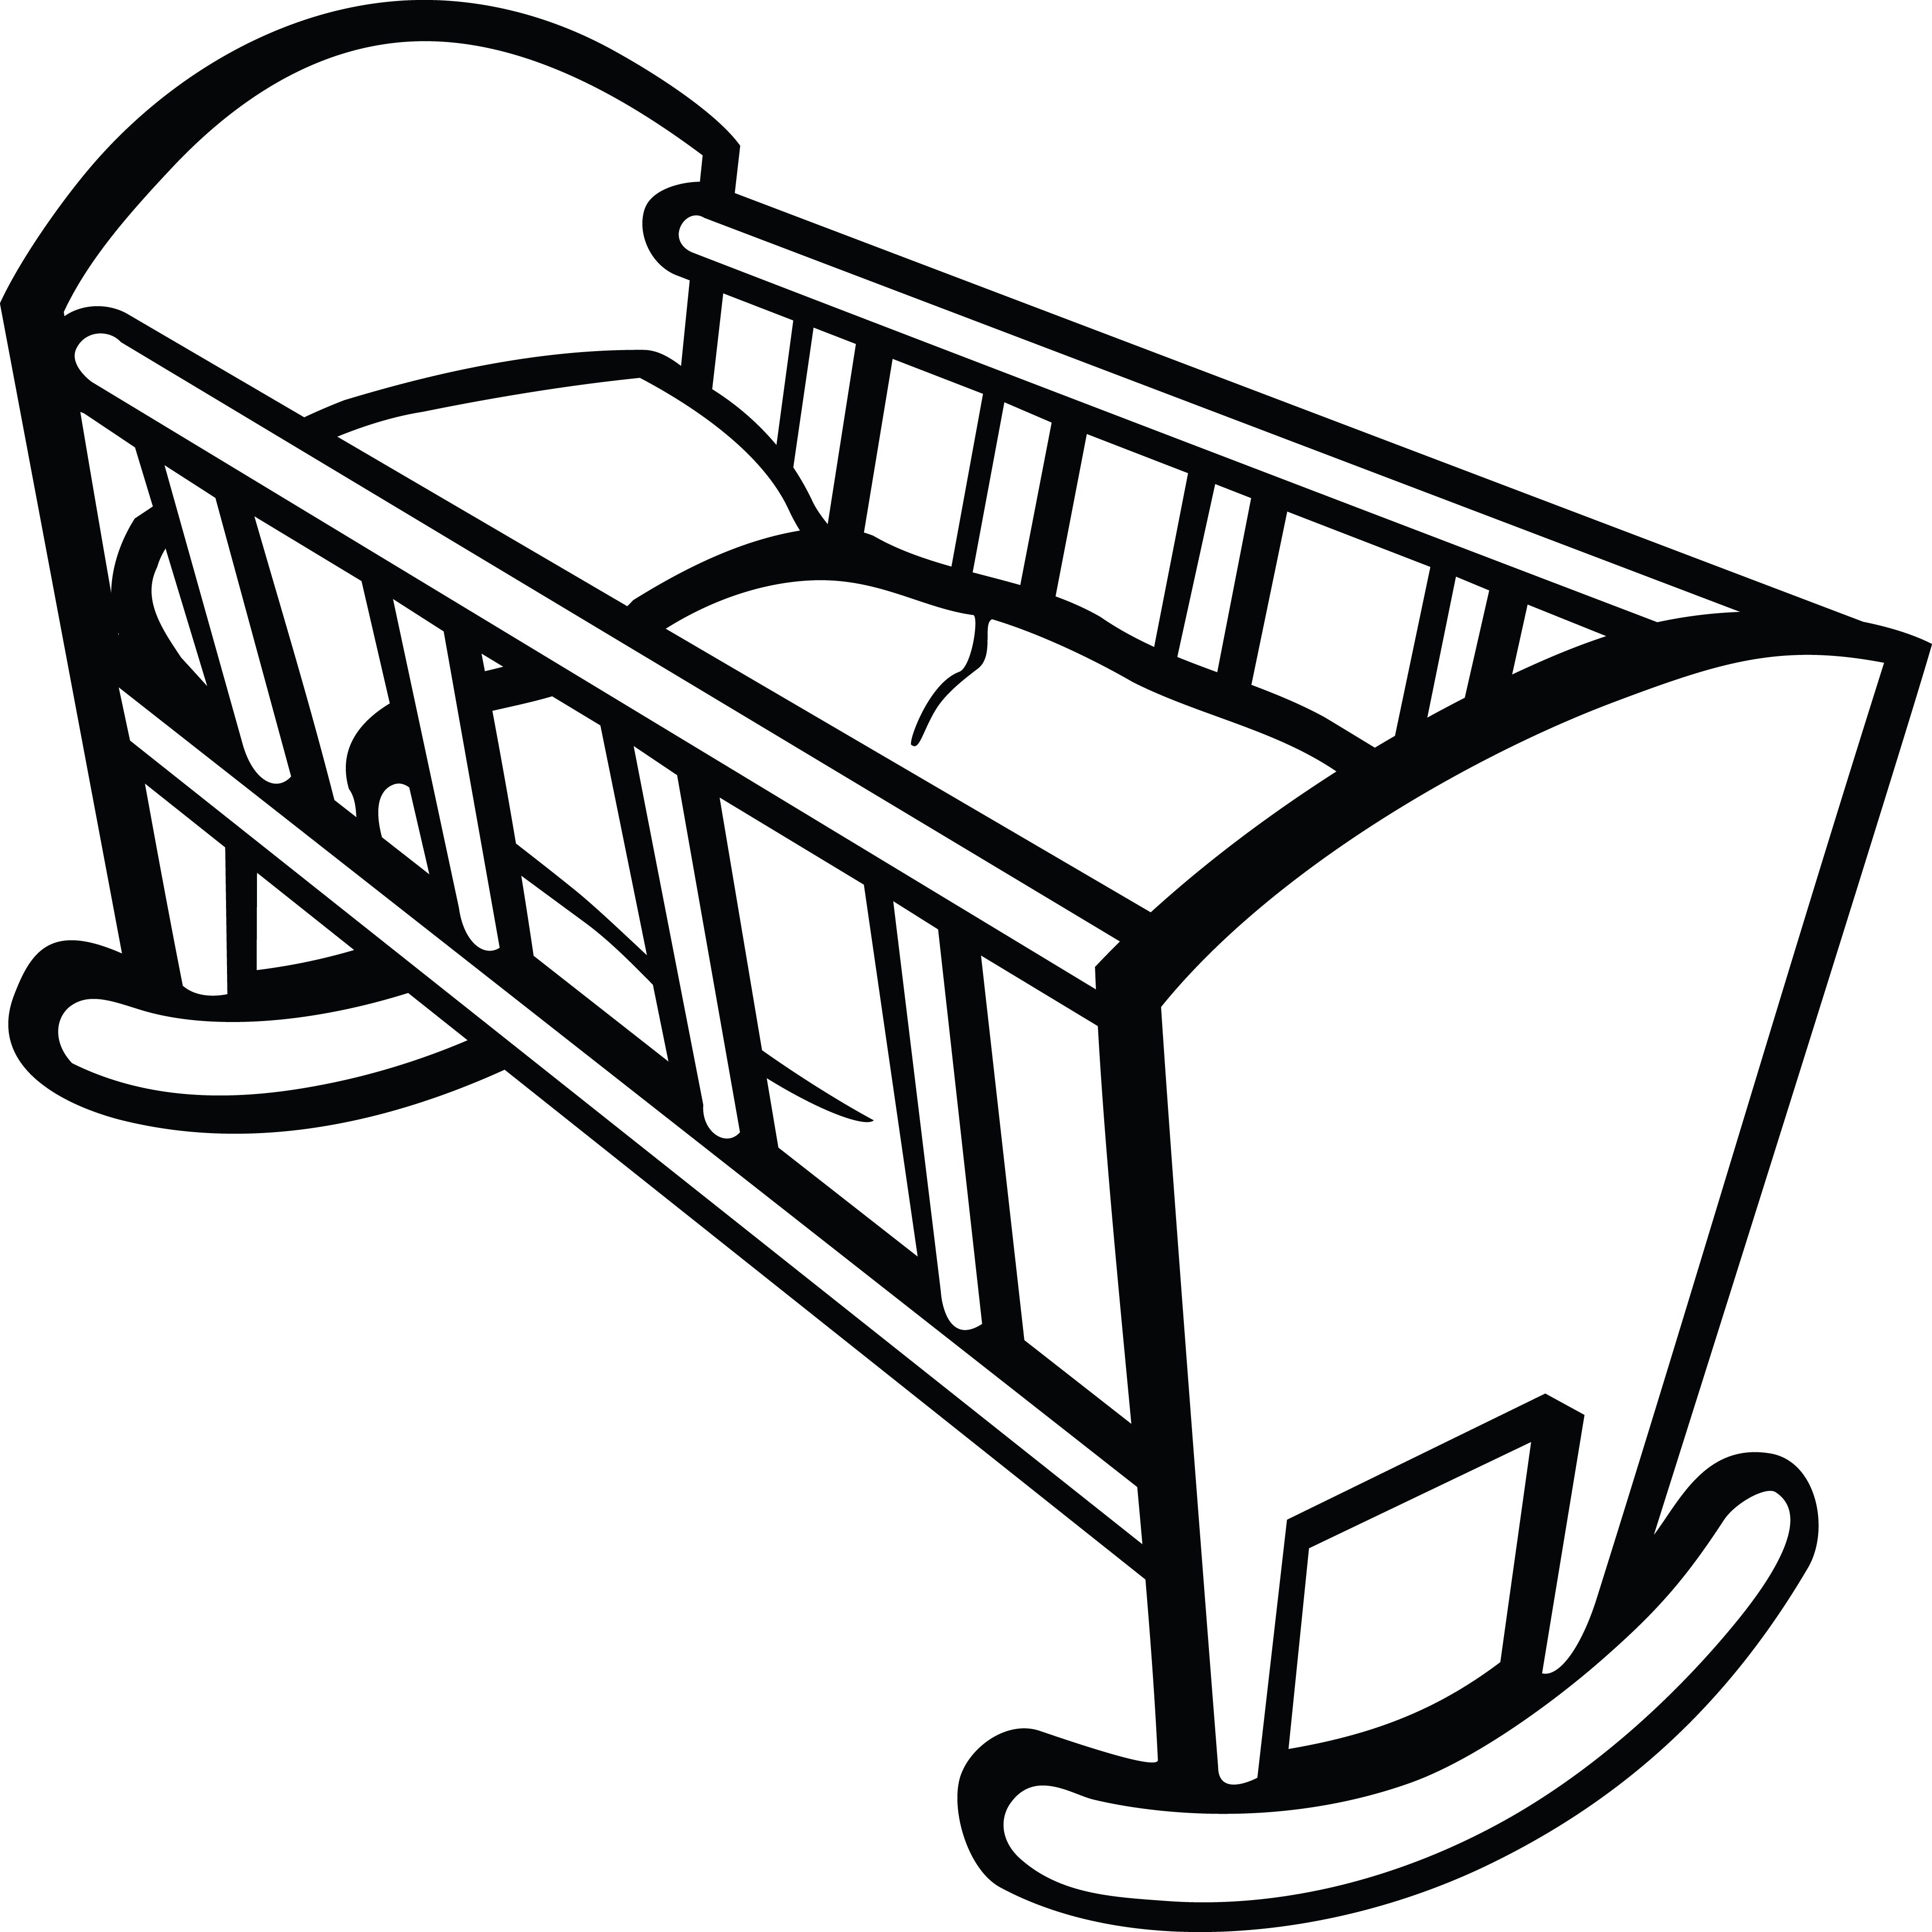 Clipart Of A baby crib.